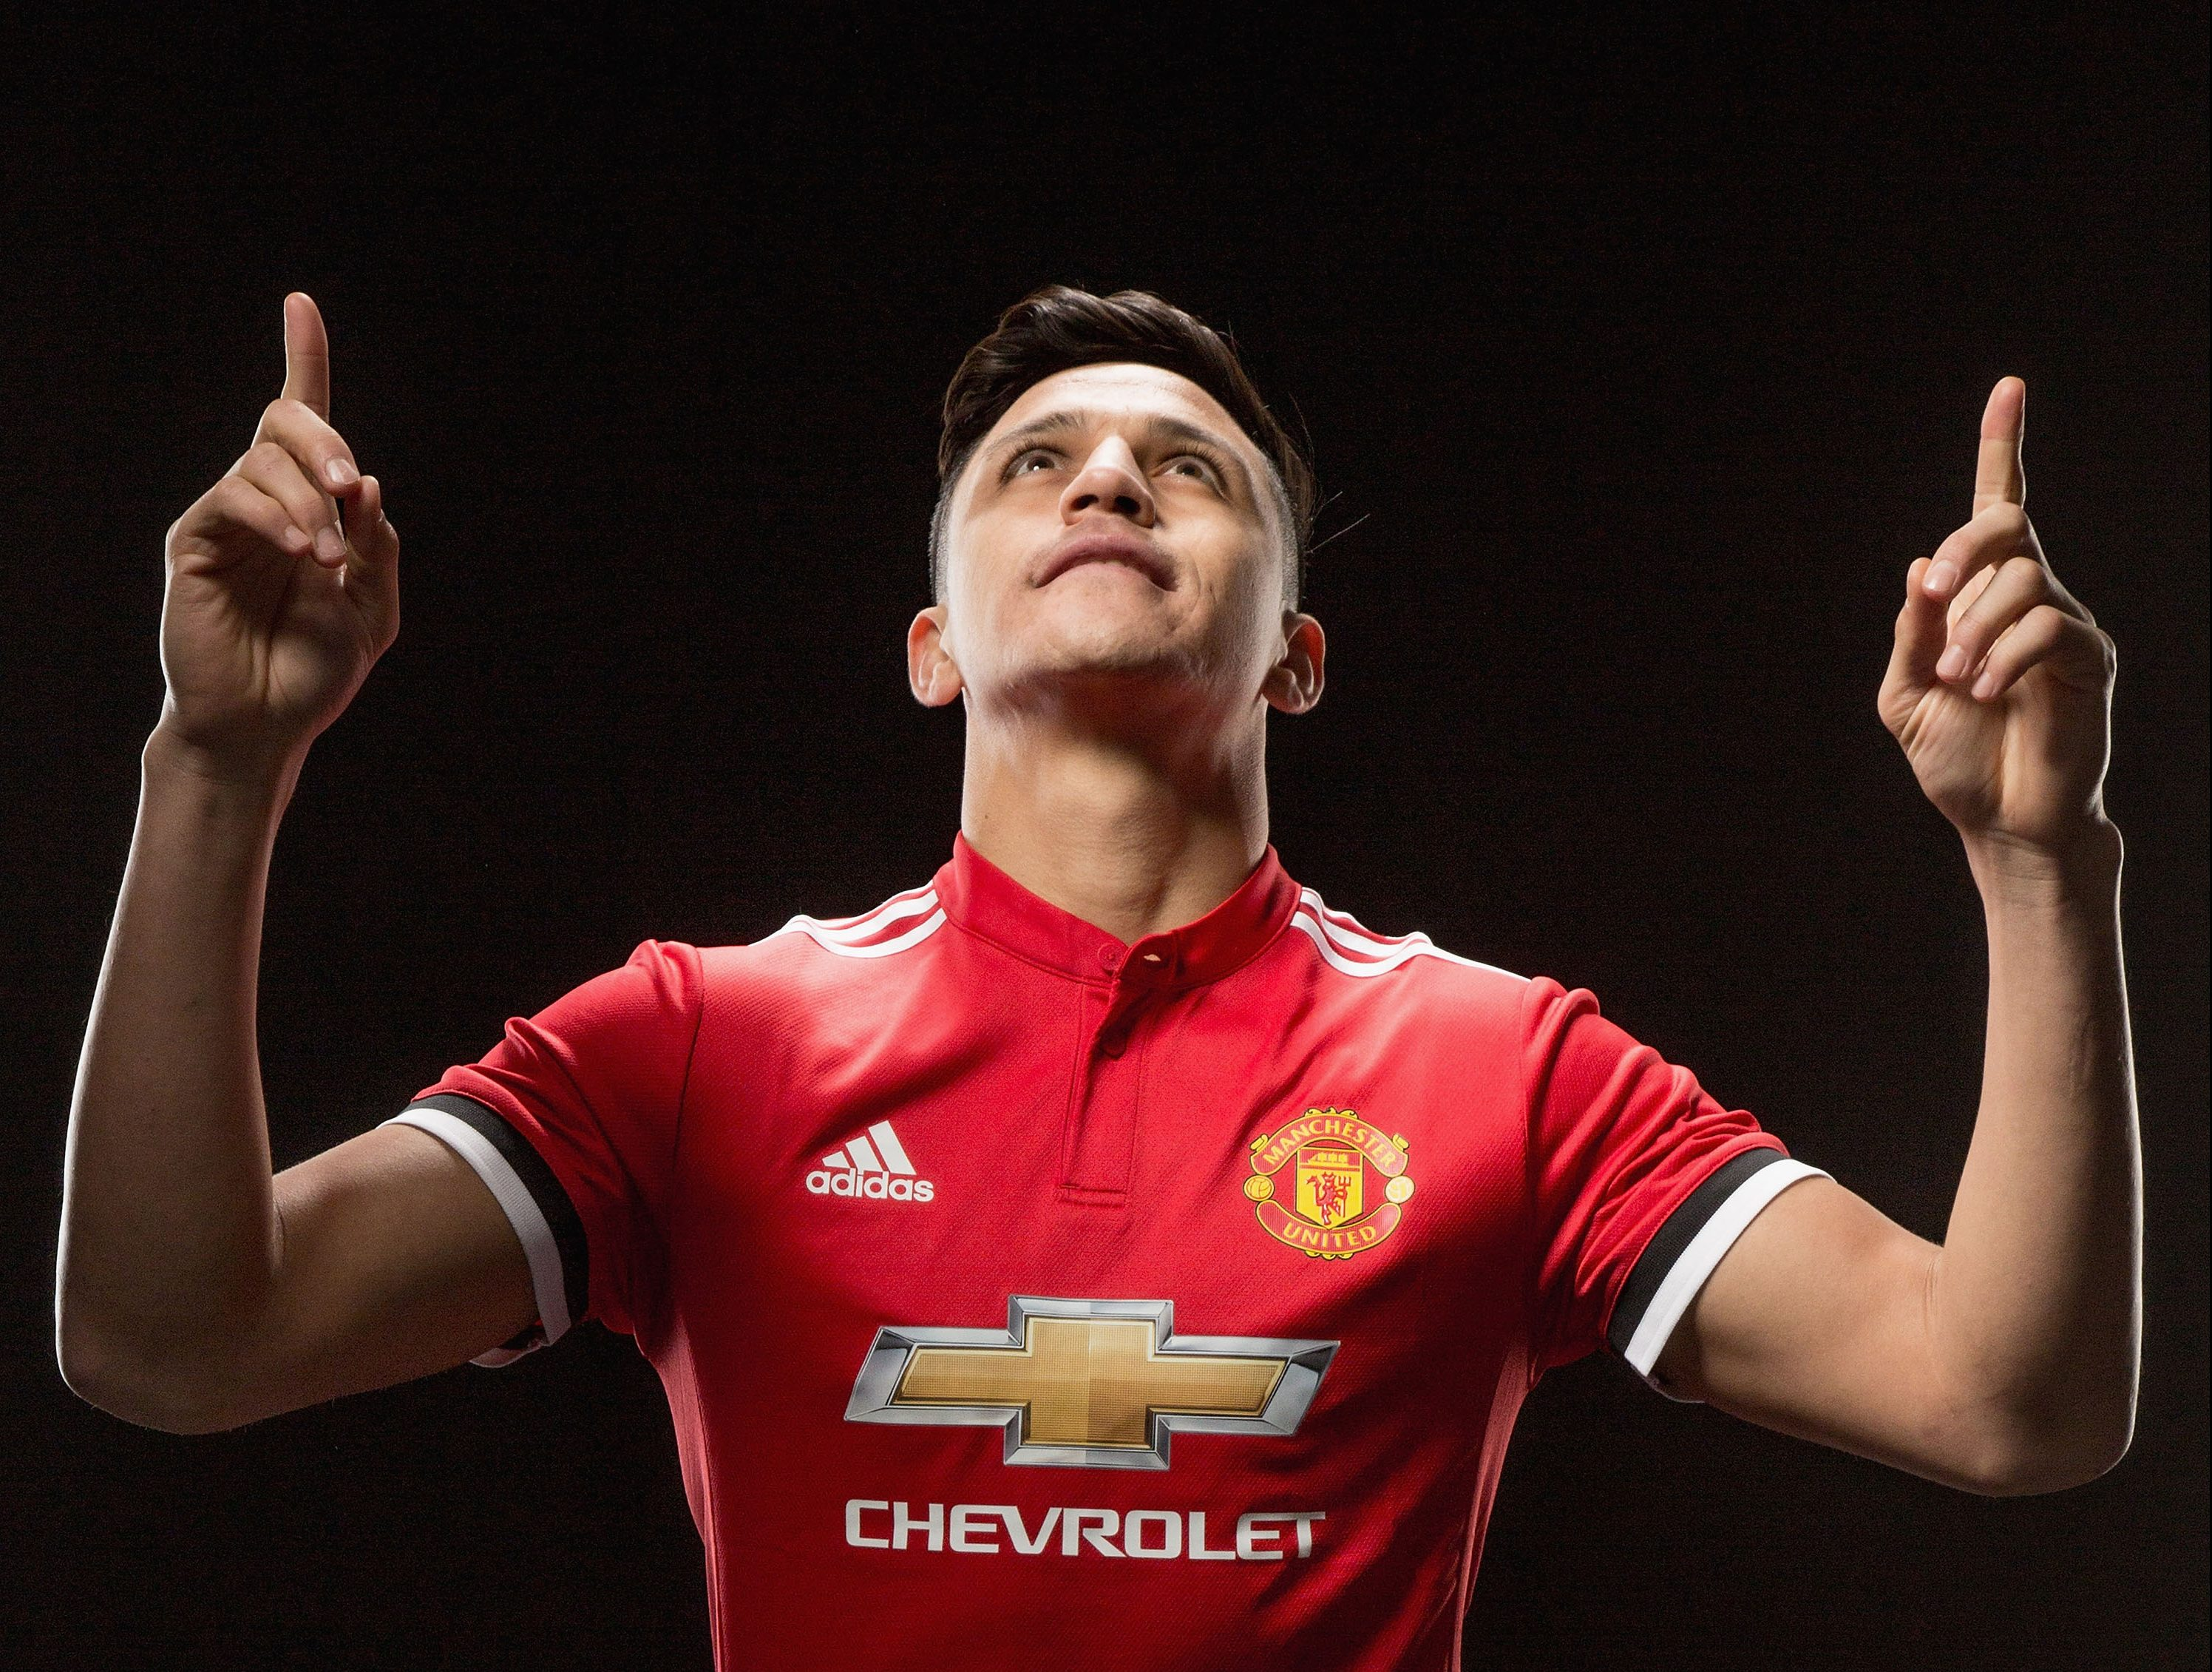 Alexis Sanchez completed his move to Manchester United from Arsenal earlier this week